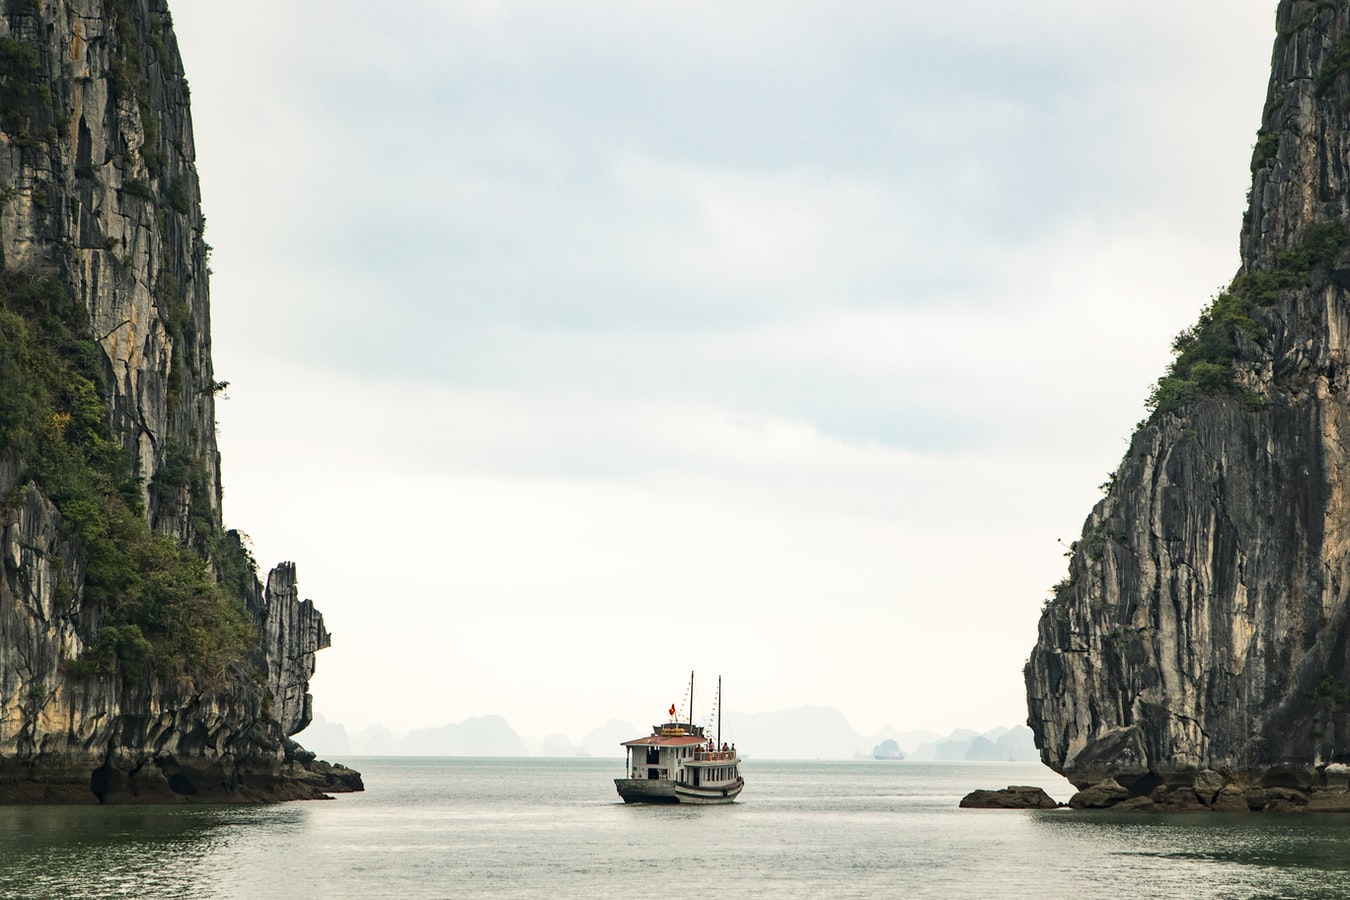 Ha Long Bay | Unsplash.com